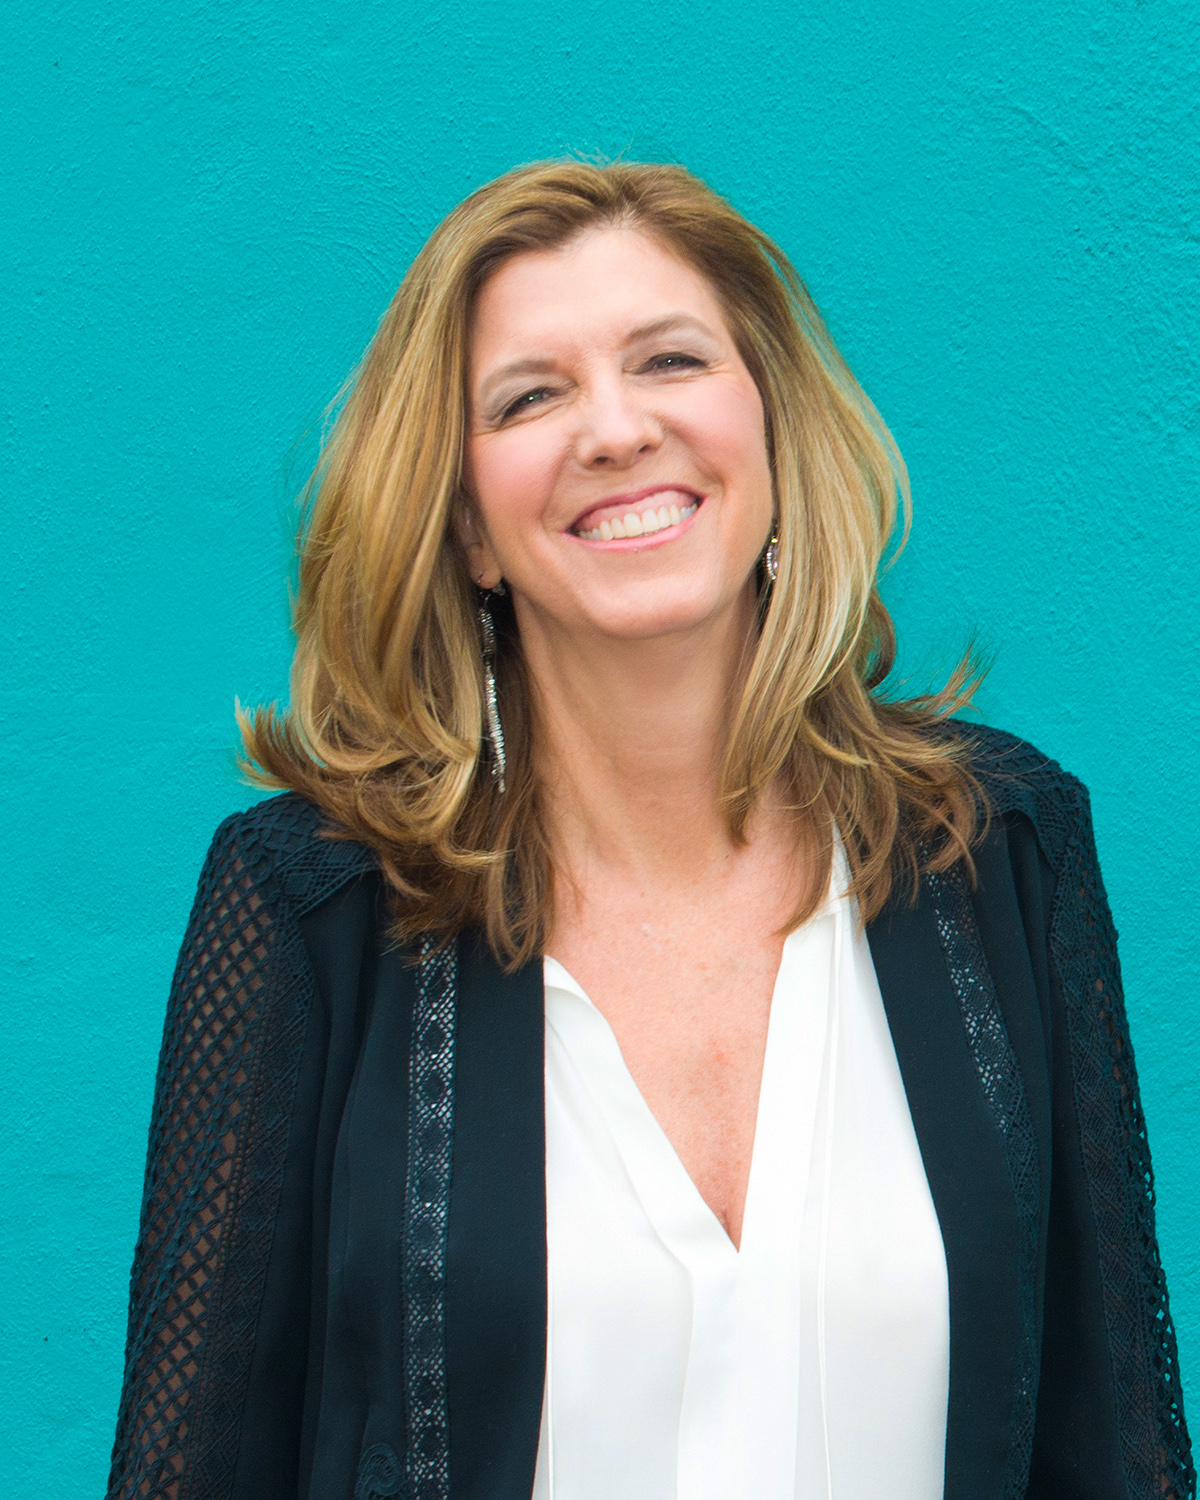 Testimonial and Headshot of Jamie Broderick, Market Leadership Coach and Speaking Event Producer